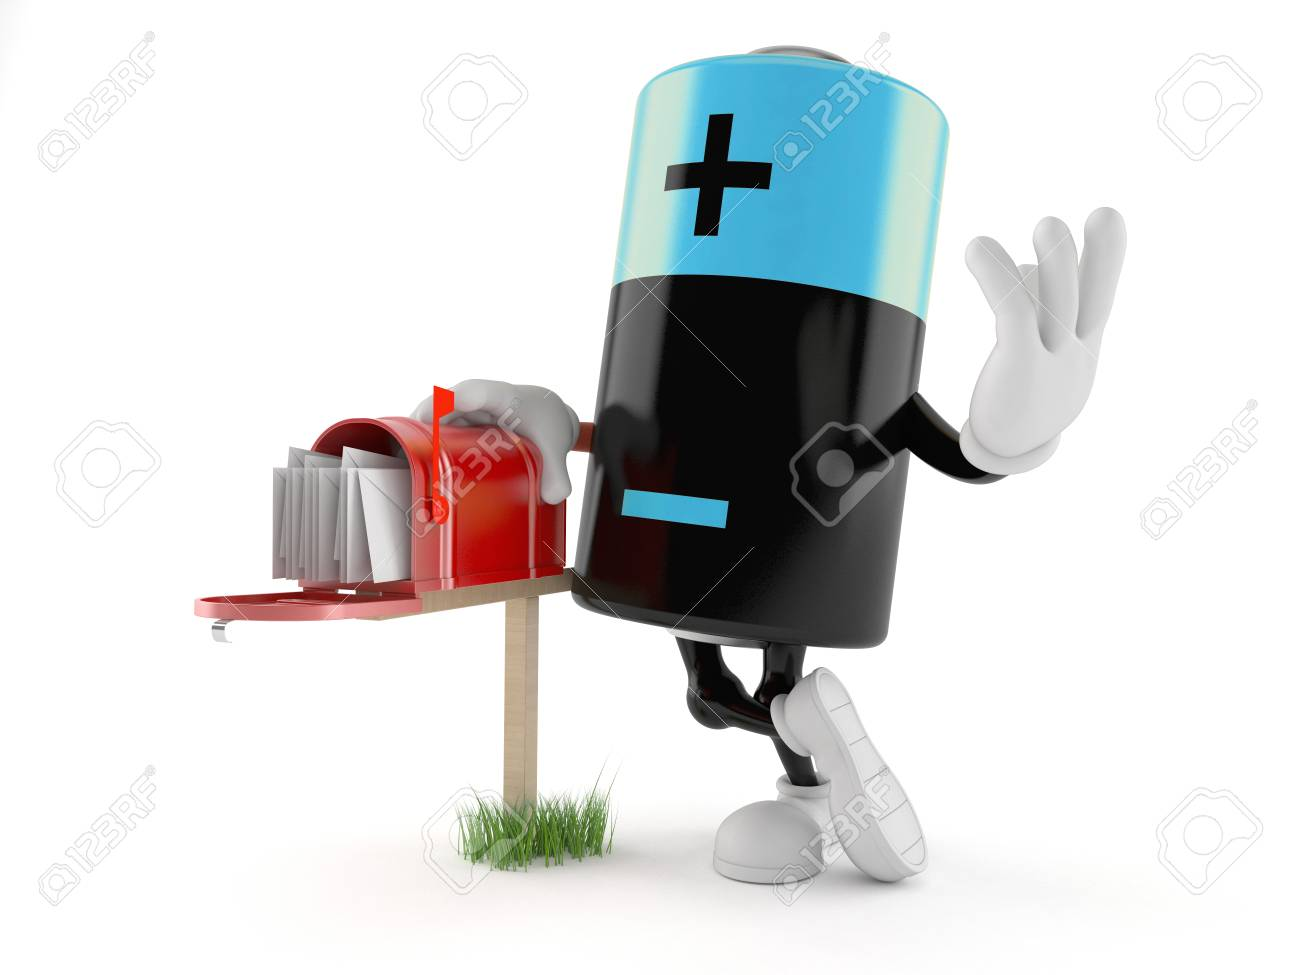 77856708-battery-character-with-mailbox-isolated-on-white-background.jpg